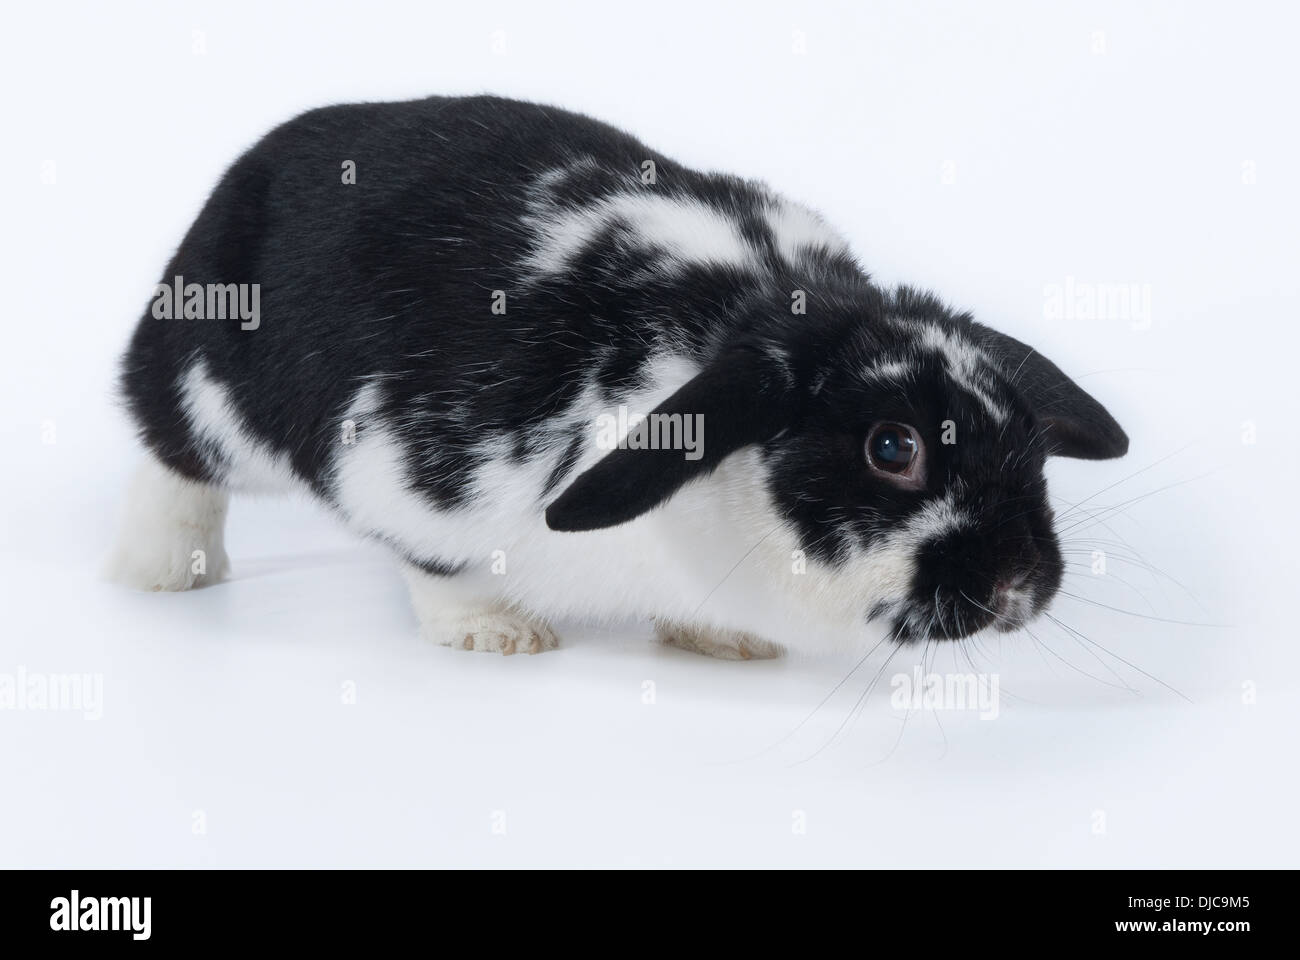 Black and white rabbit breed